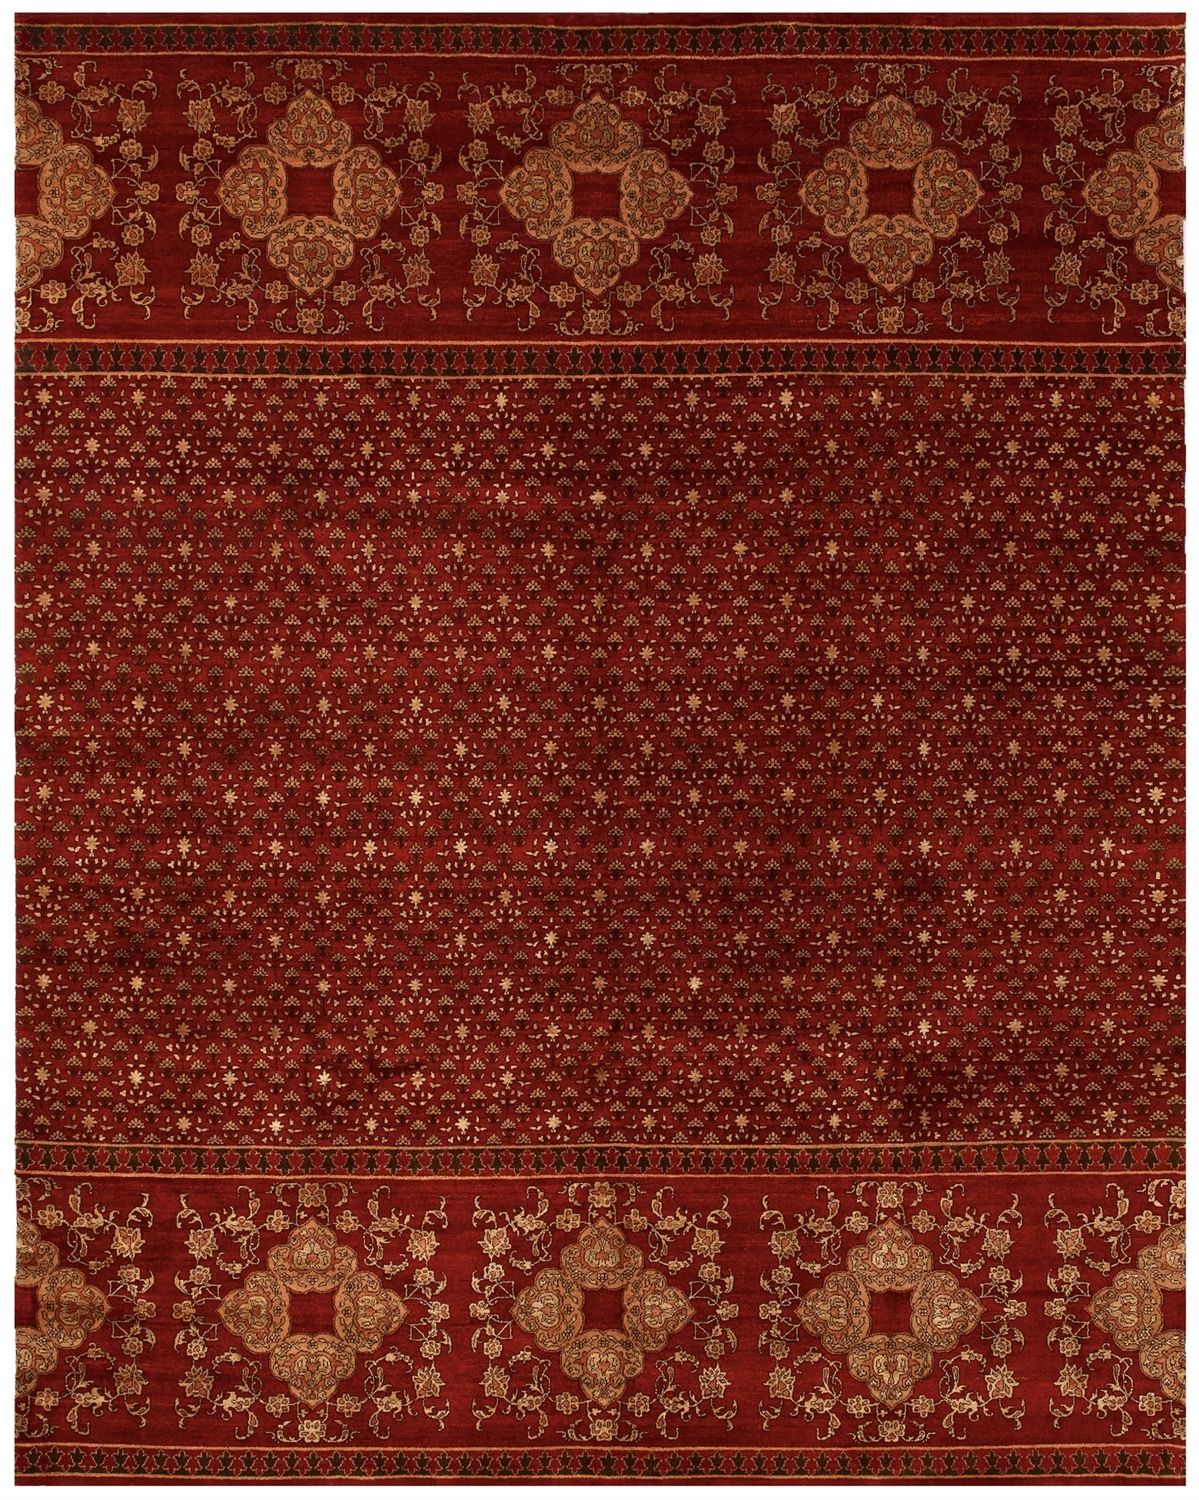 5156141fred000.jpg (1199×1500) Rugs, Red, Home decor